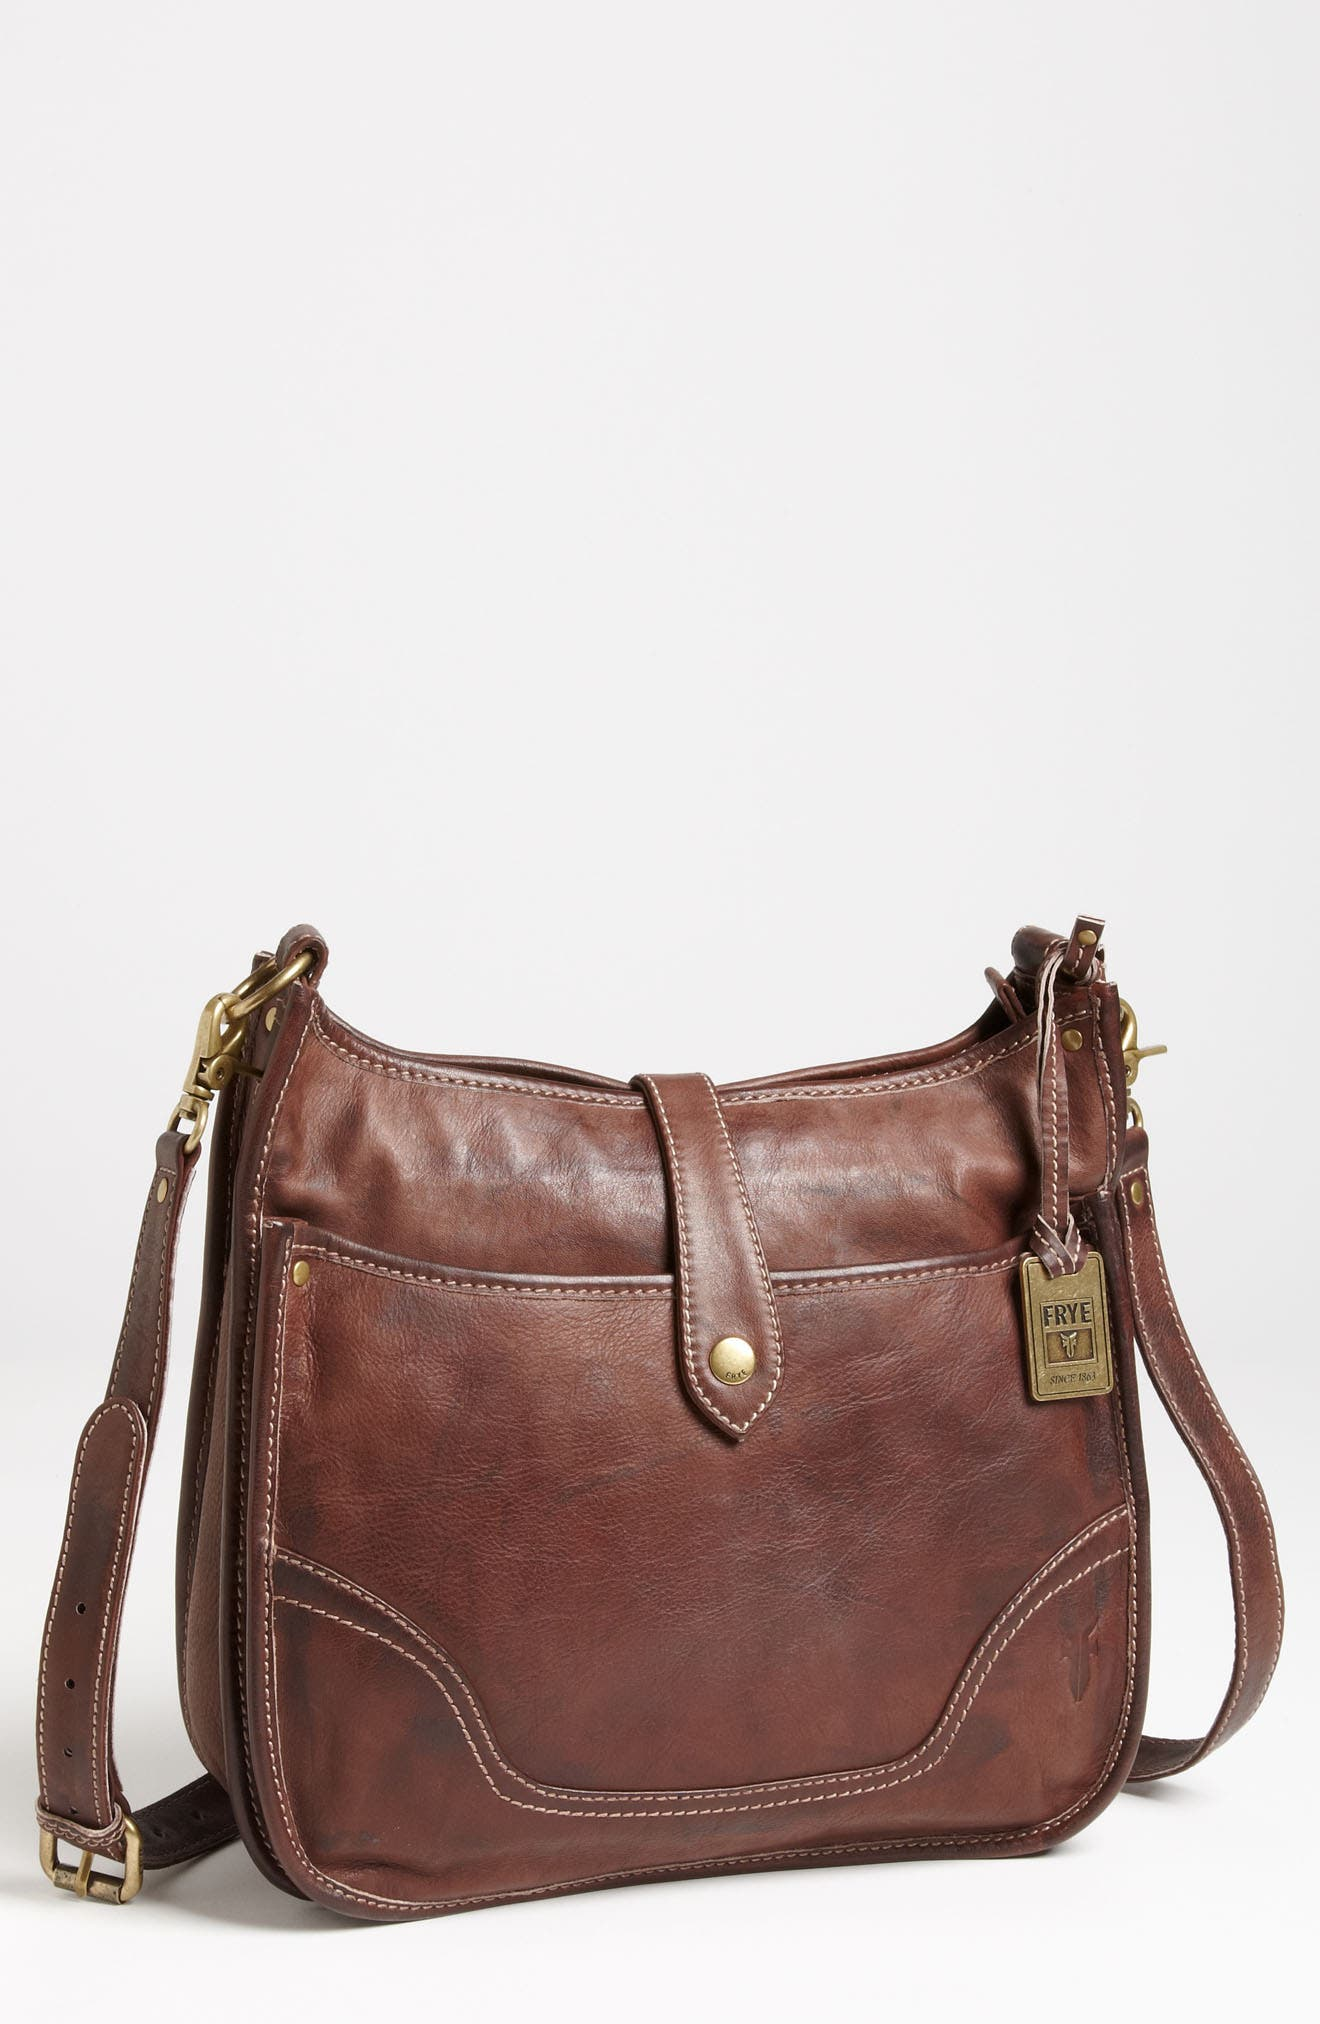 Alternate Image 1 Selected - Frye 'Campus' Leather Crossbody Bag